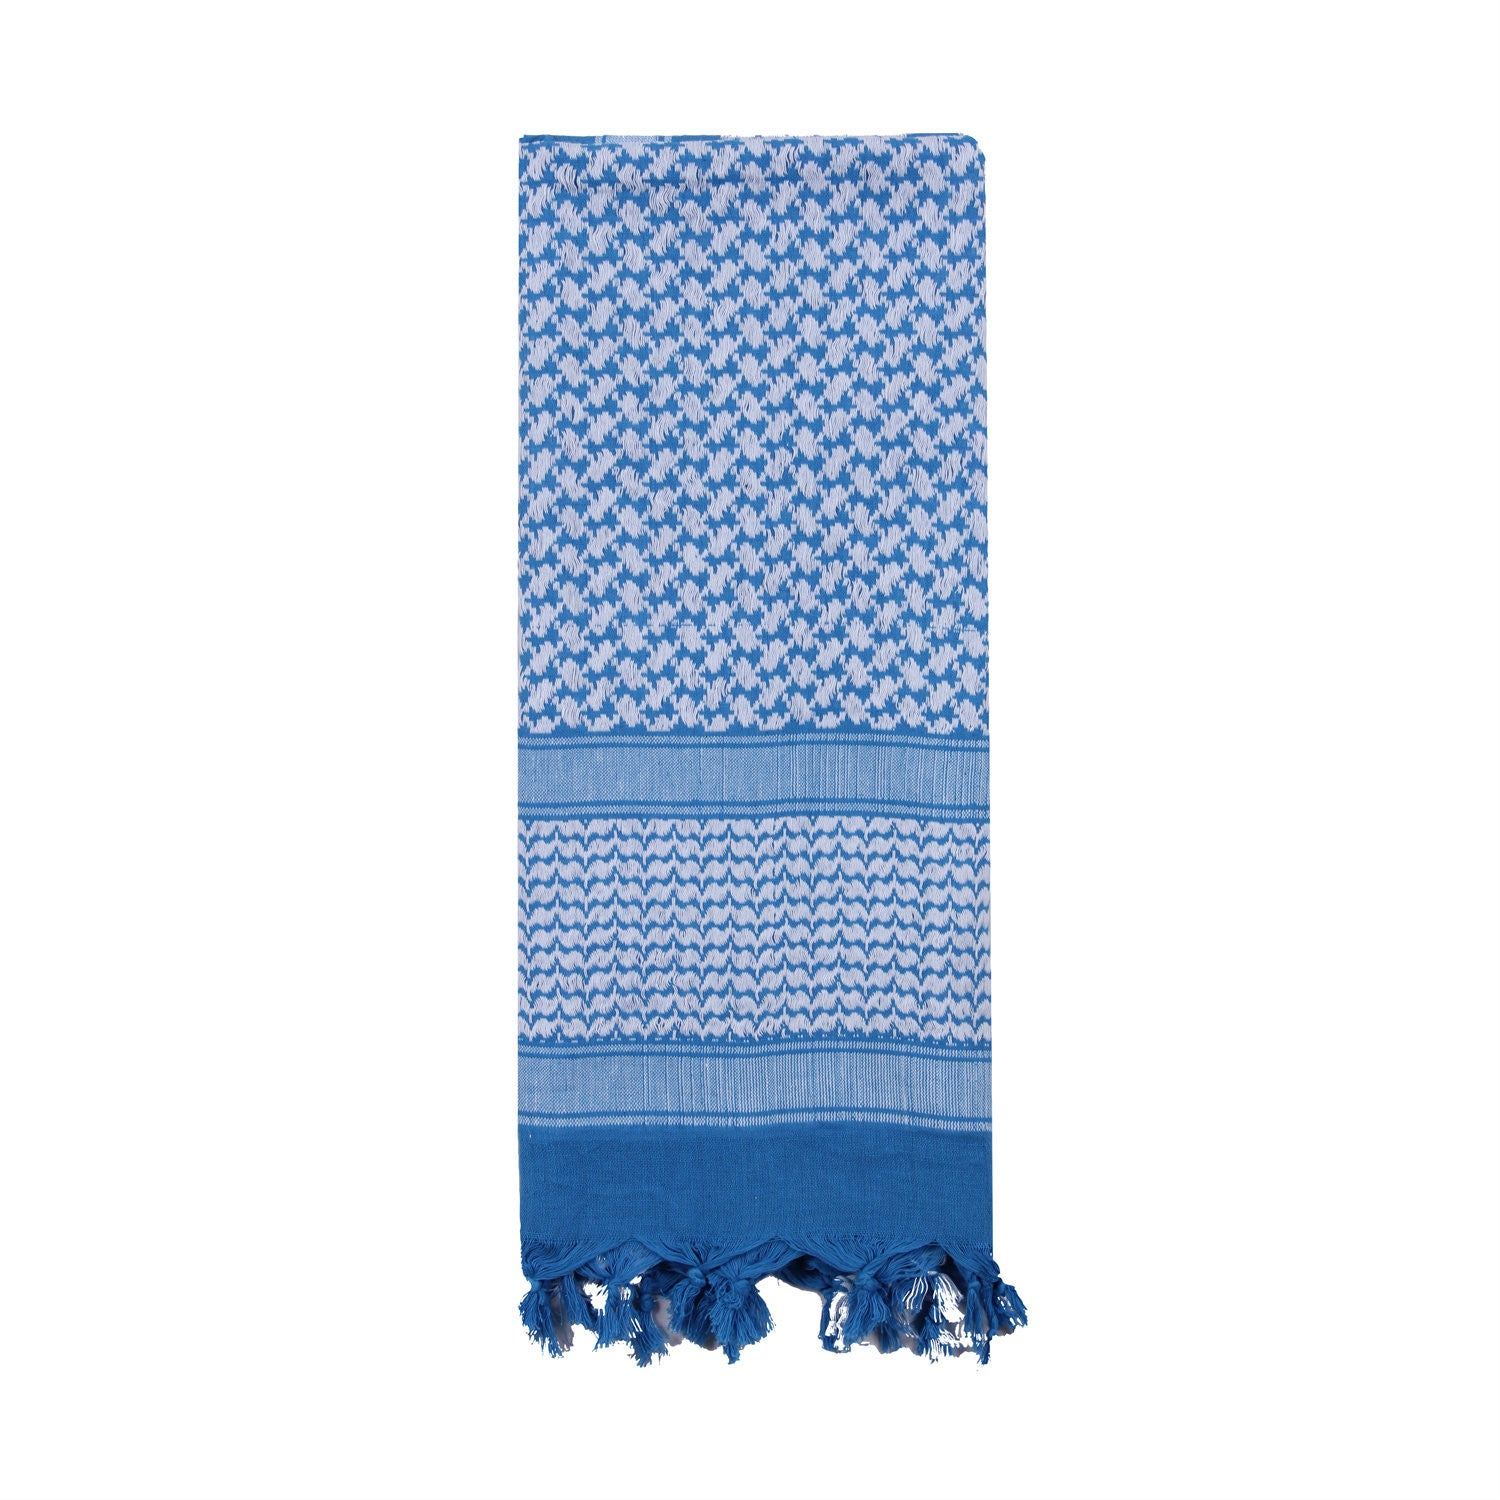 Shemagh Tactical Desert Scarf Blue / White